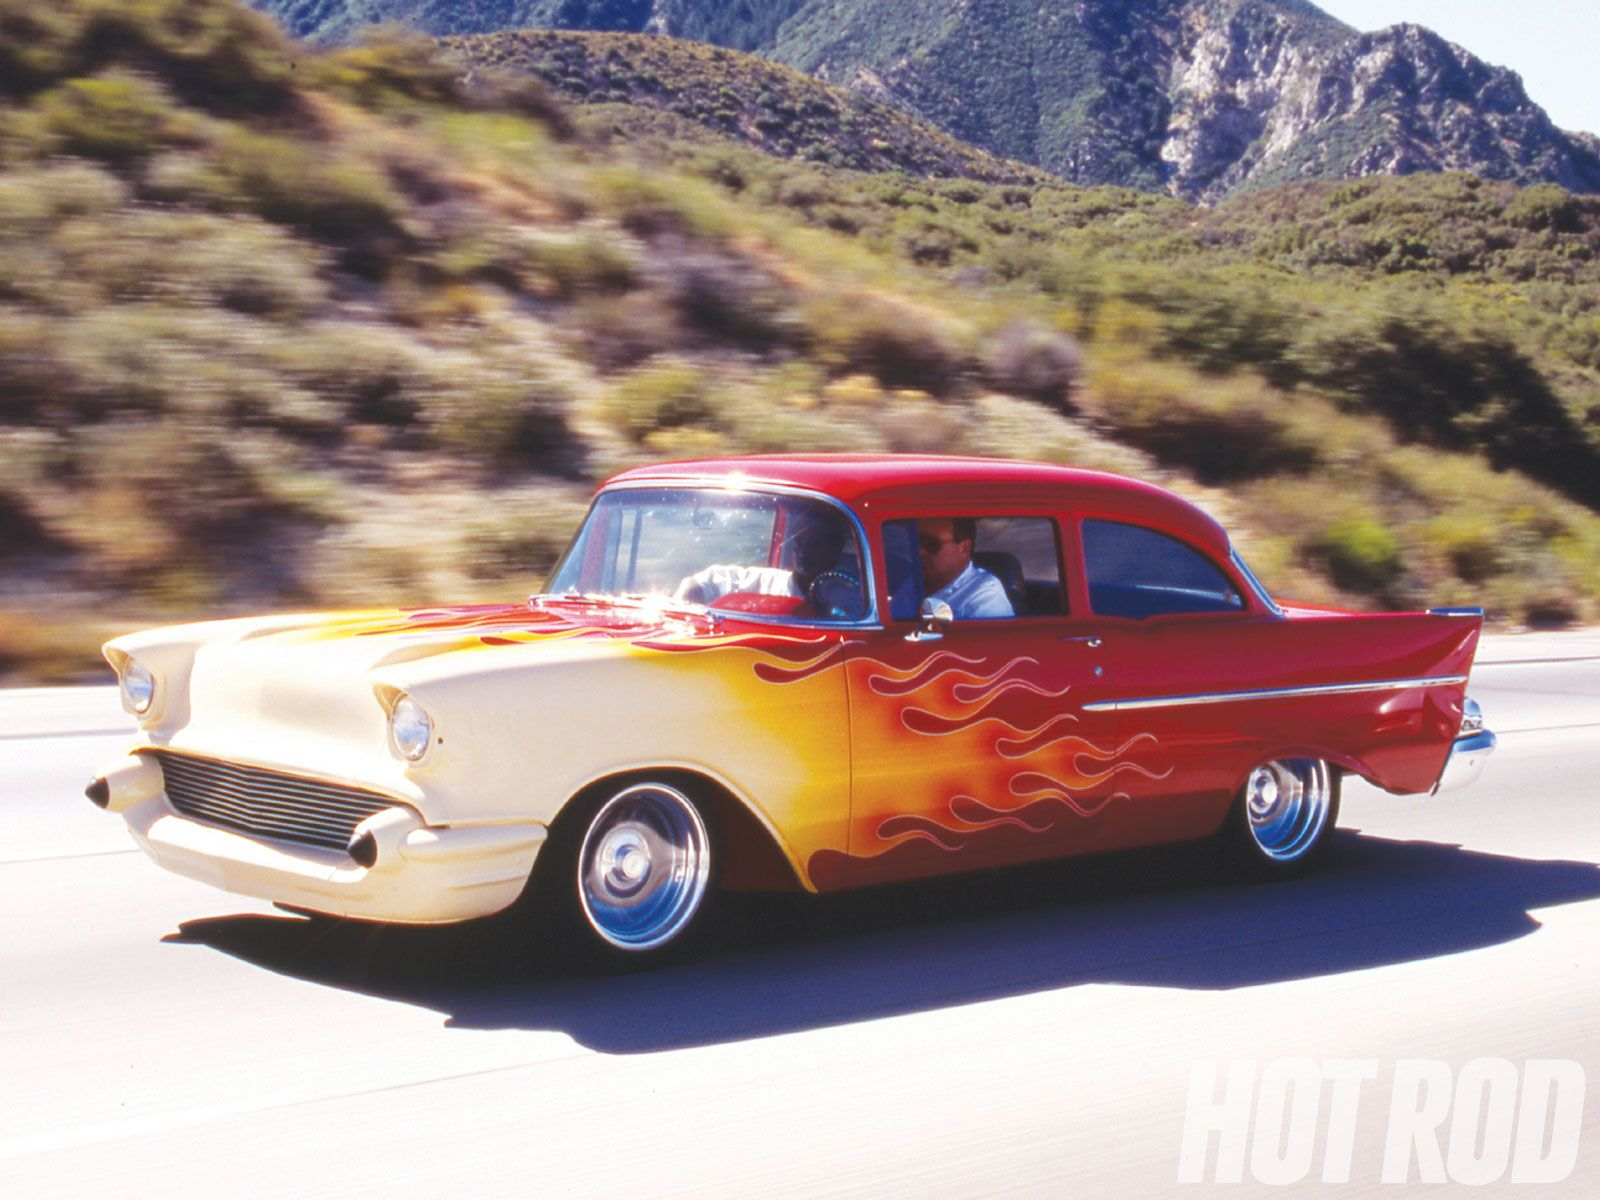 1955 chevy hot rods 1955 chevys flame hot rod photo 3 cars 1955 chevy hot rods 1955 chevys flame hot rod photo 3 sciox Choice Image